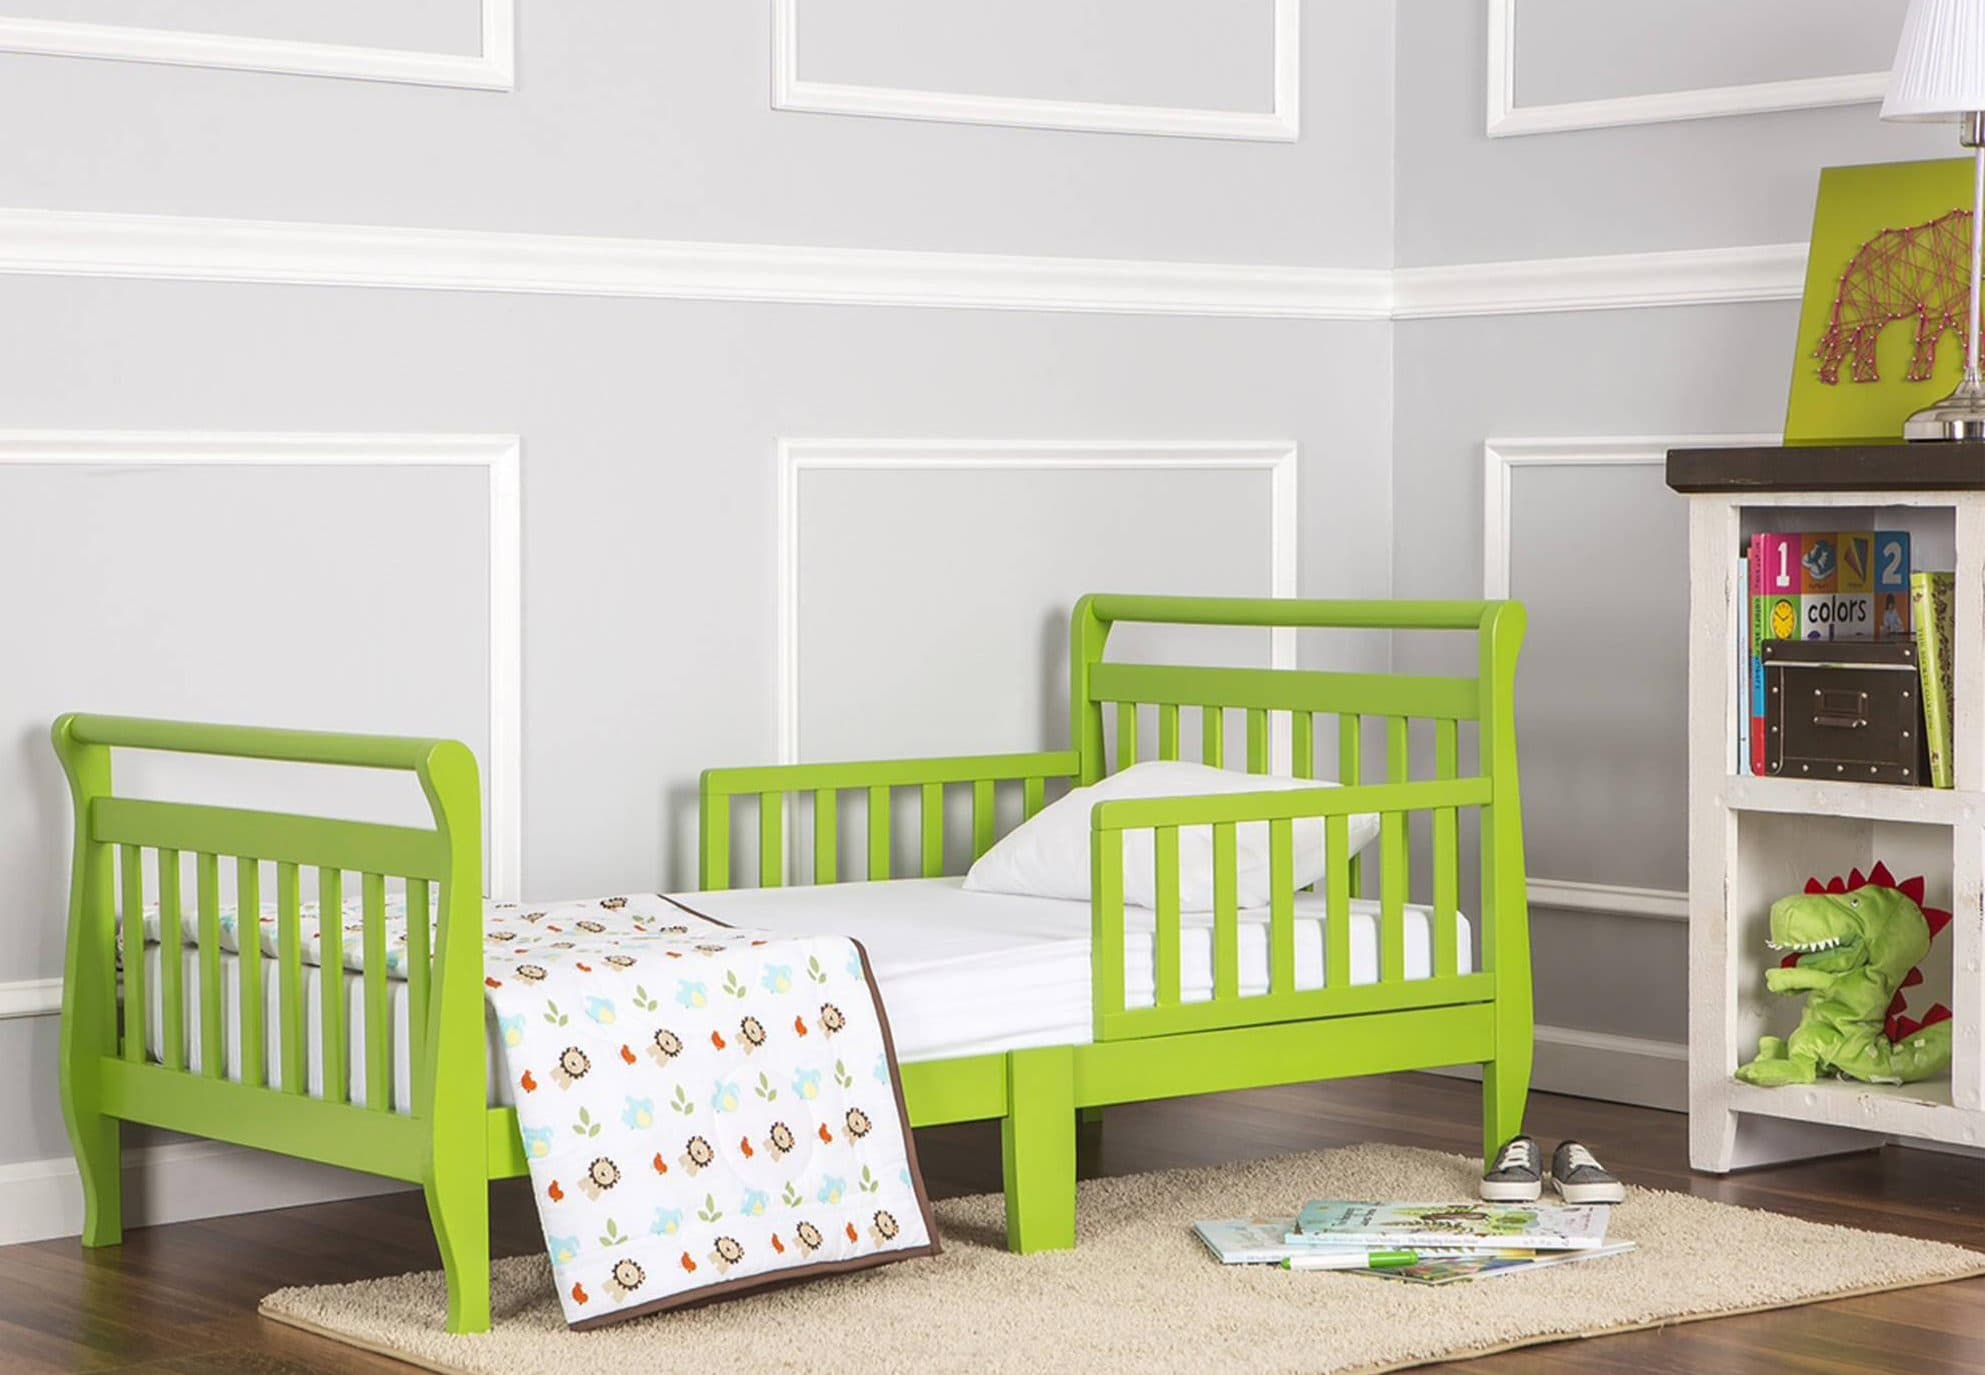 Find great deals on eBay for cama para bebe. Shop with confidence.